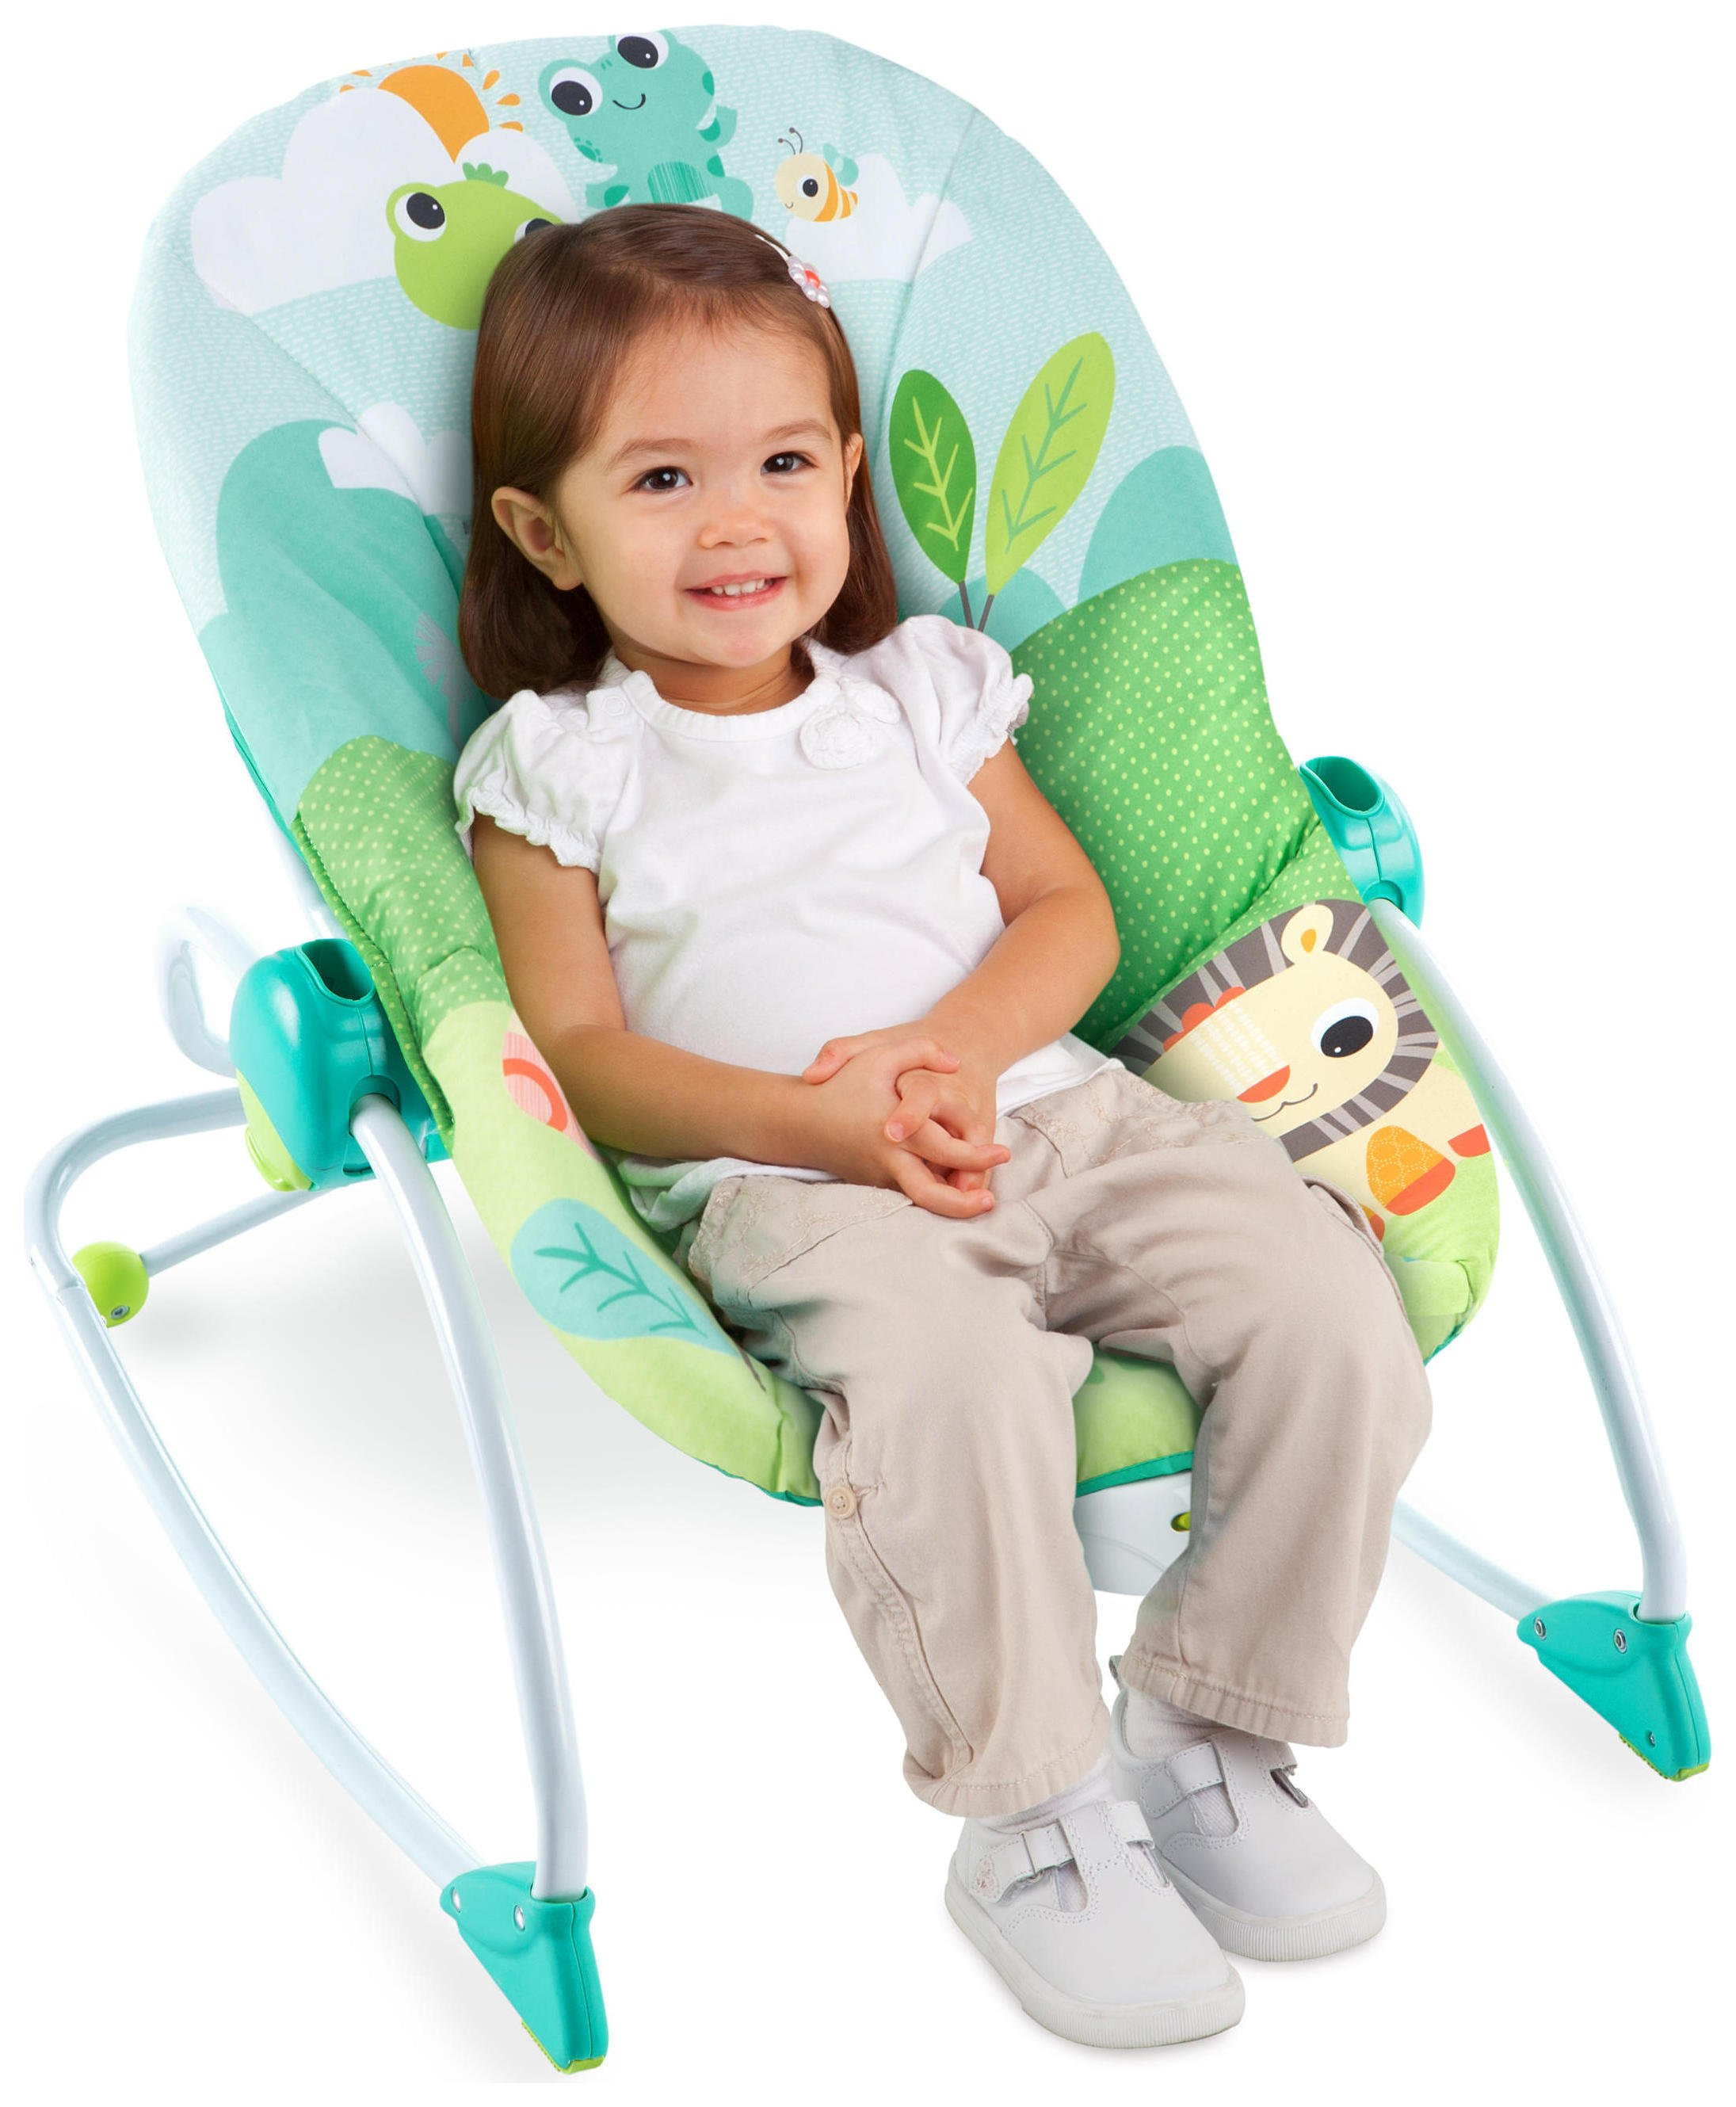 Bright Starts Playful Parade Baby to Big Kid Rocker Best Price, Cheapest Prices